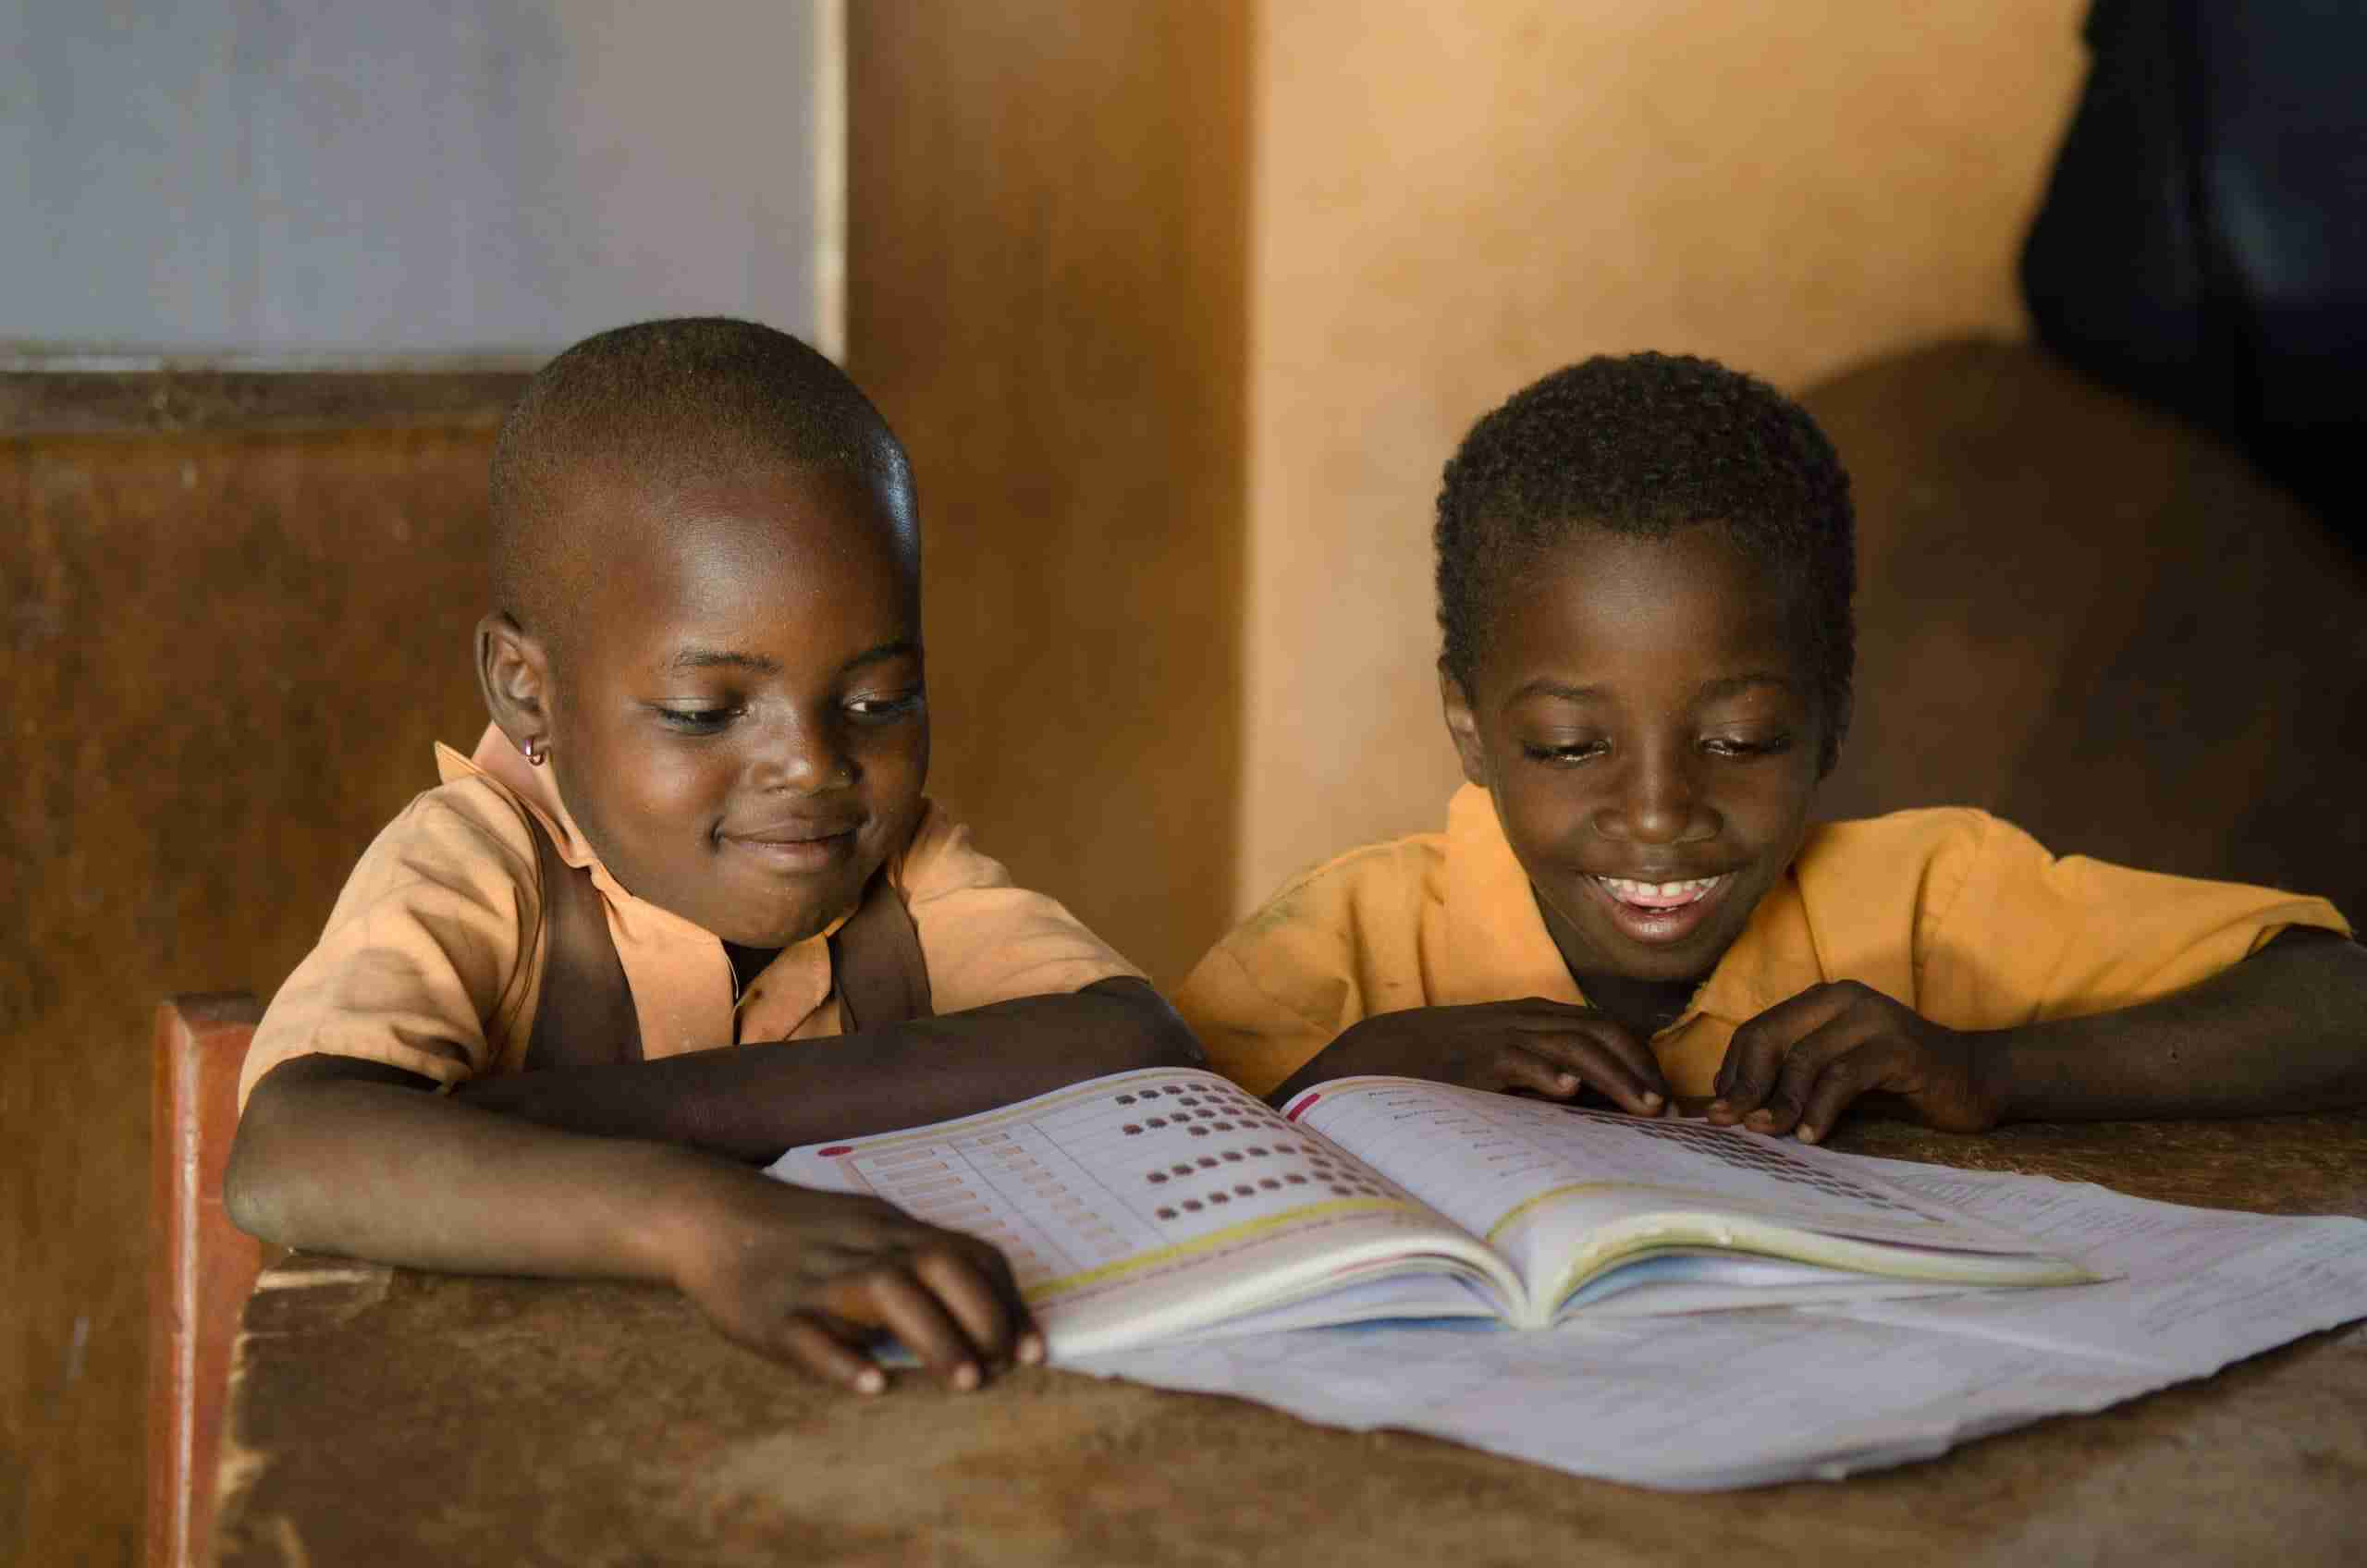 Boy and girl read on desk